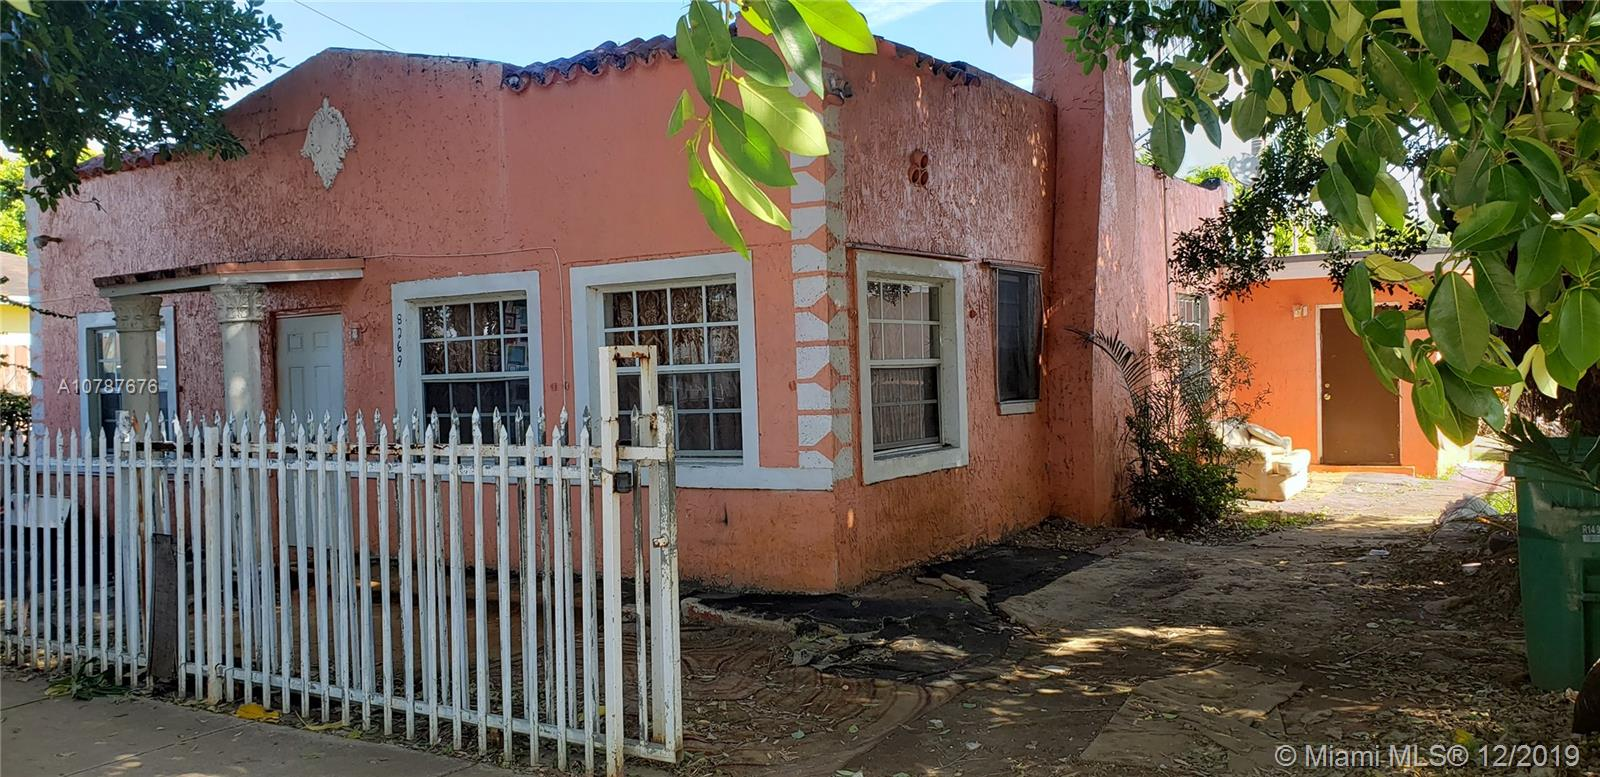 Location Location East of I 95. Old-Spanish architecture blocks from the Design district, Magic city, Wynwood and Miami shores.This is a 5/3 as per Miami Dade  public records.